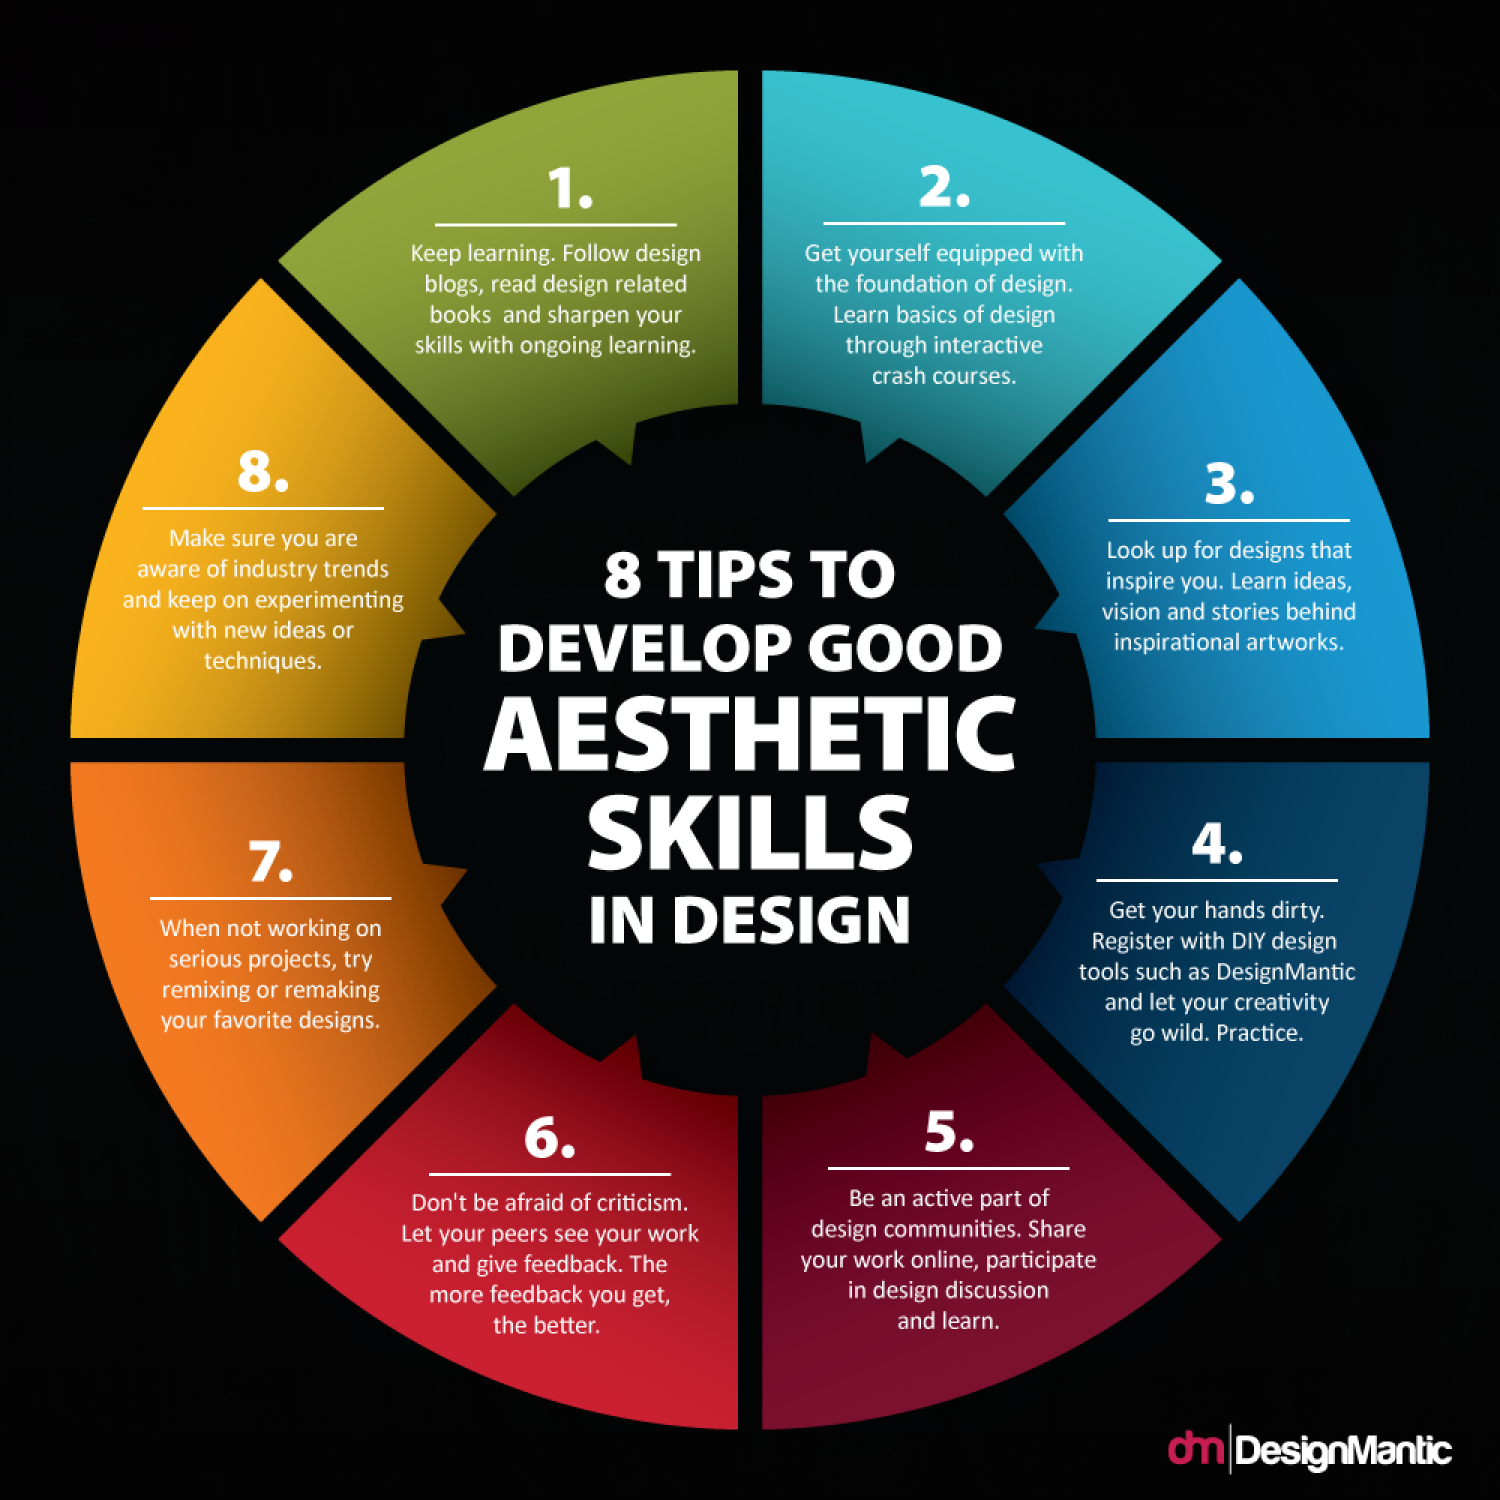 8 Tips To Develop Good Aesthetic Skills in Design Infographic